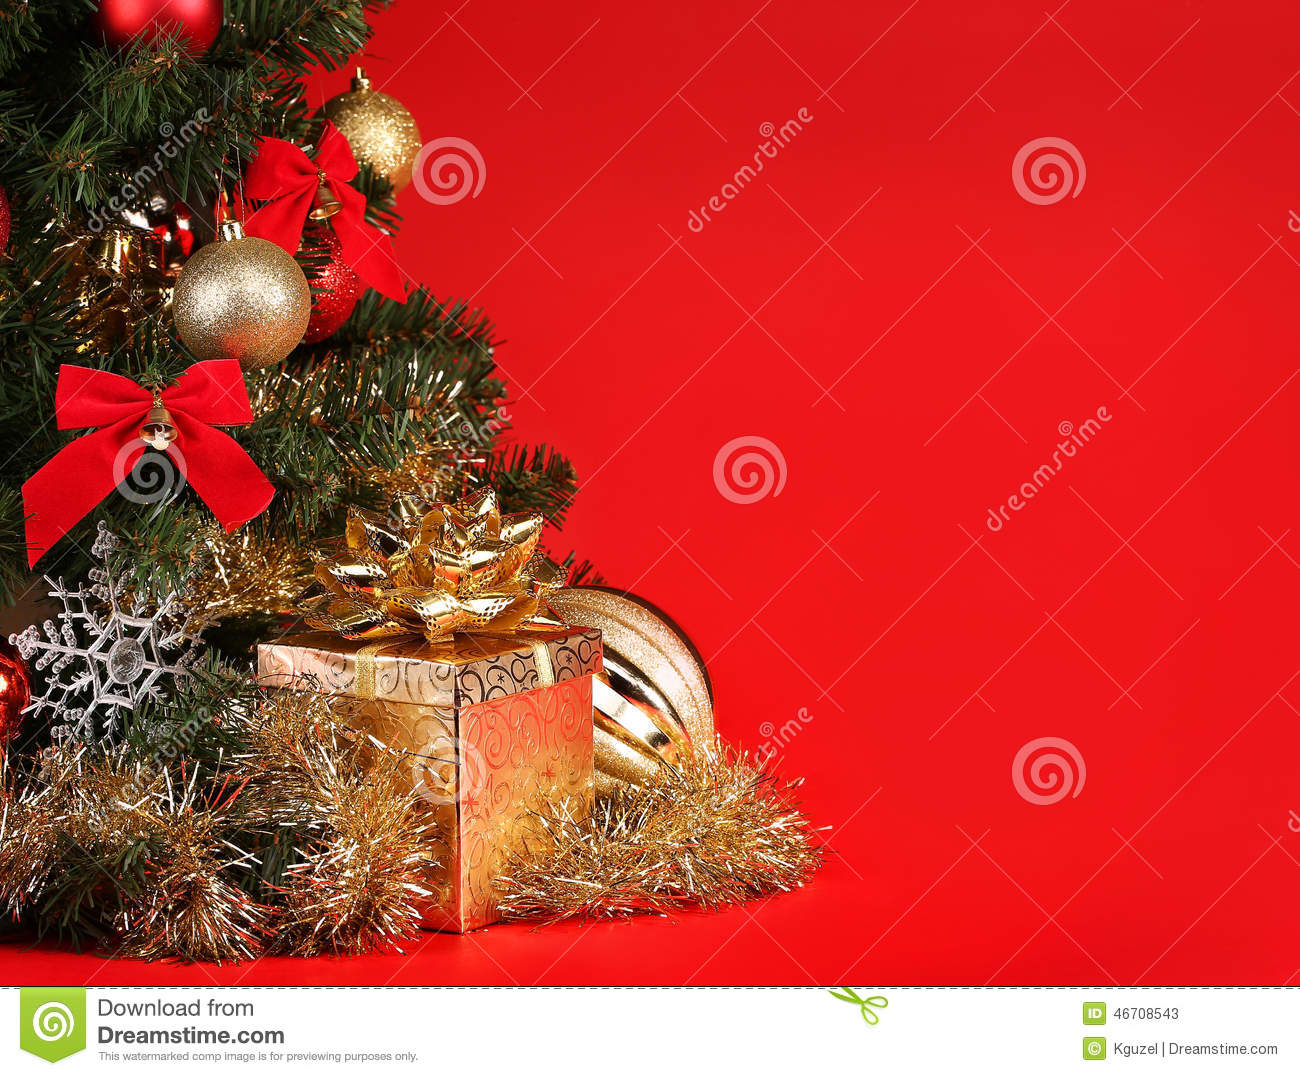 Red Christmas Background With Xmas Tree And Gifts: Christmas. Gift Box Under Christmas Tree Over Red